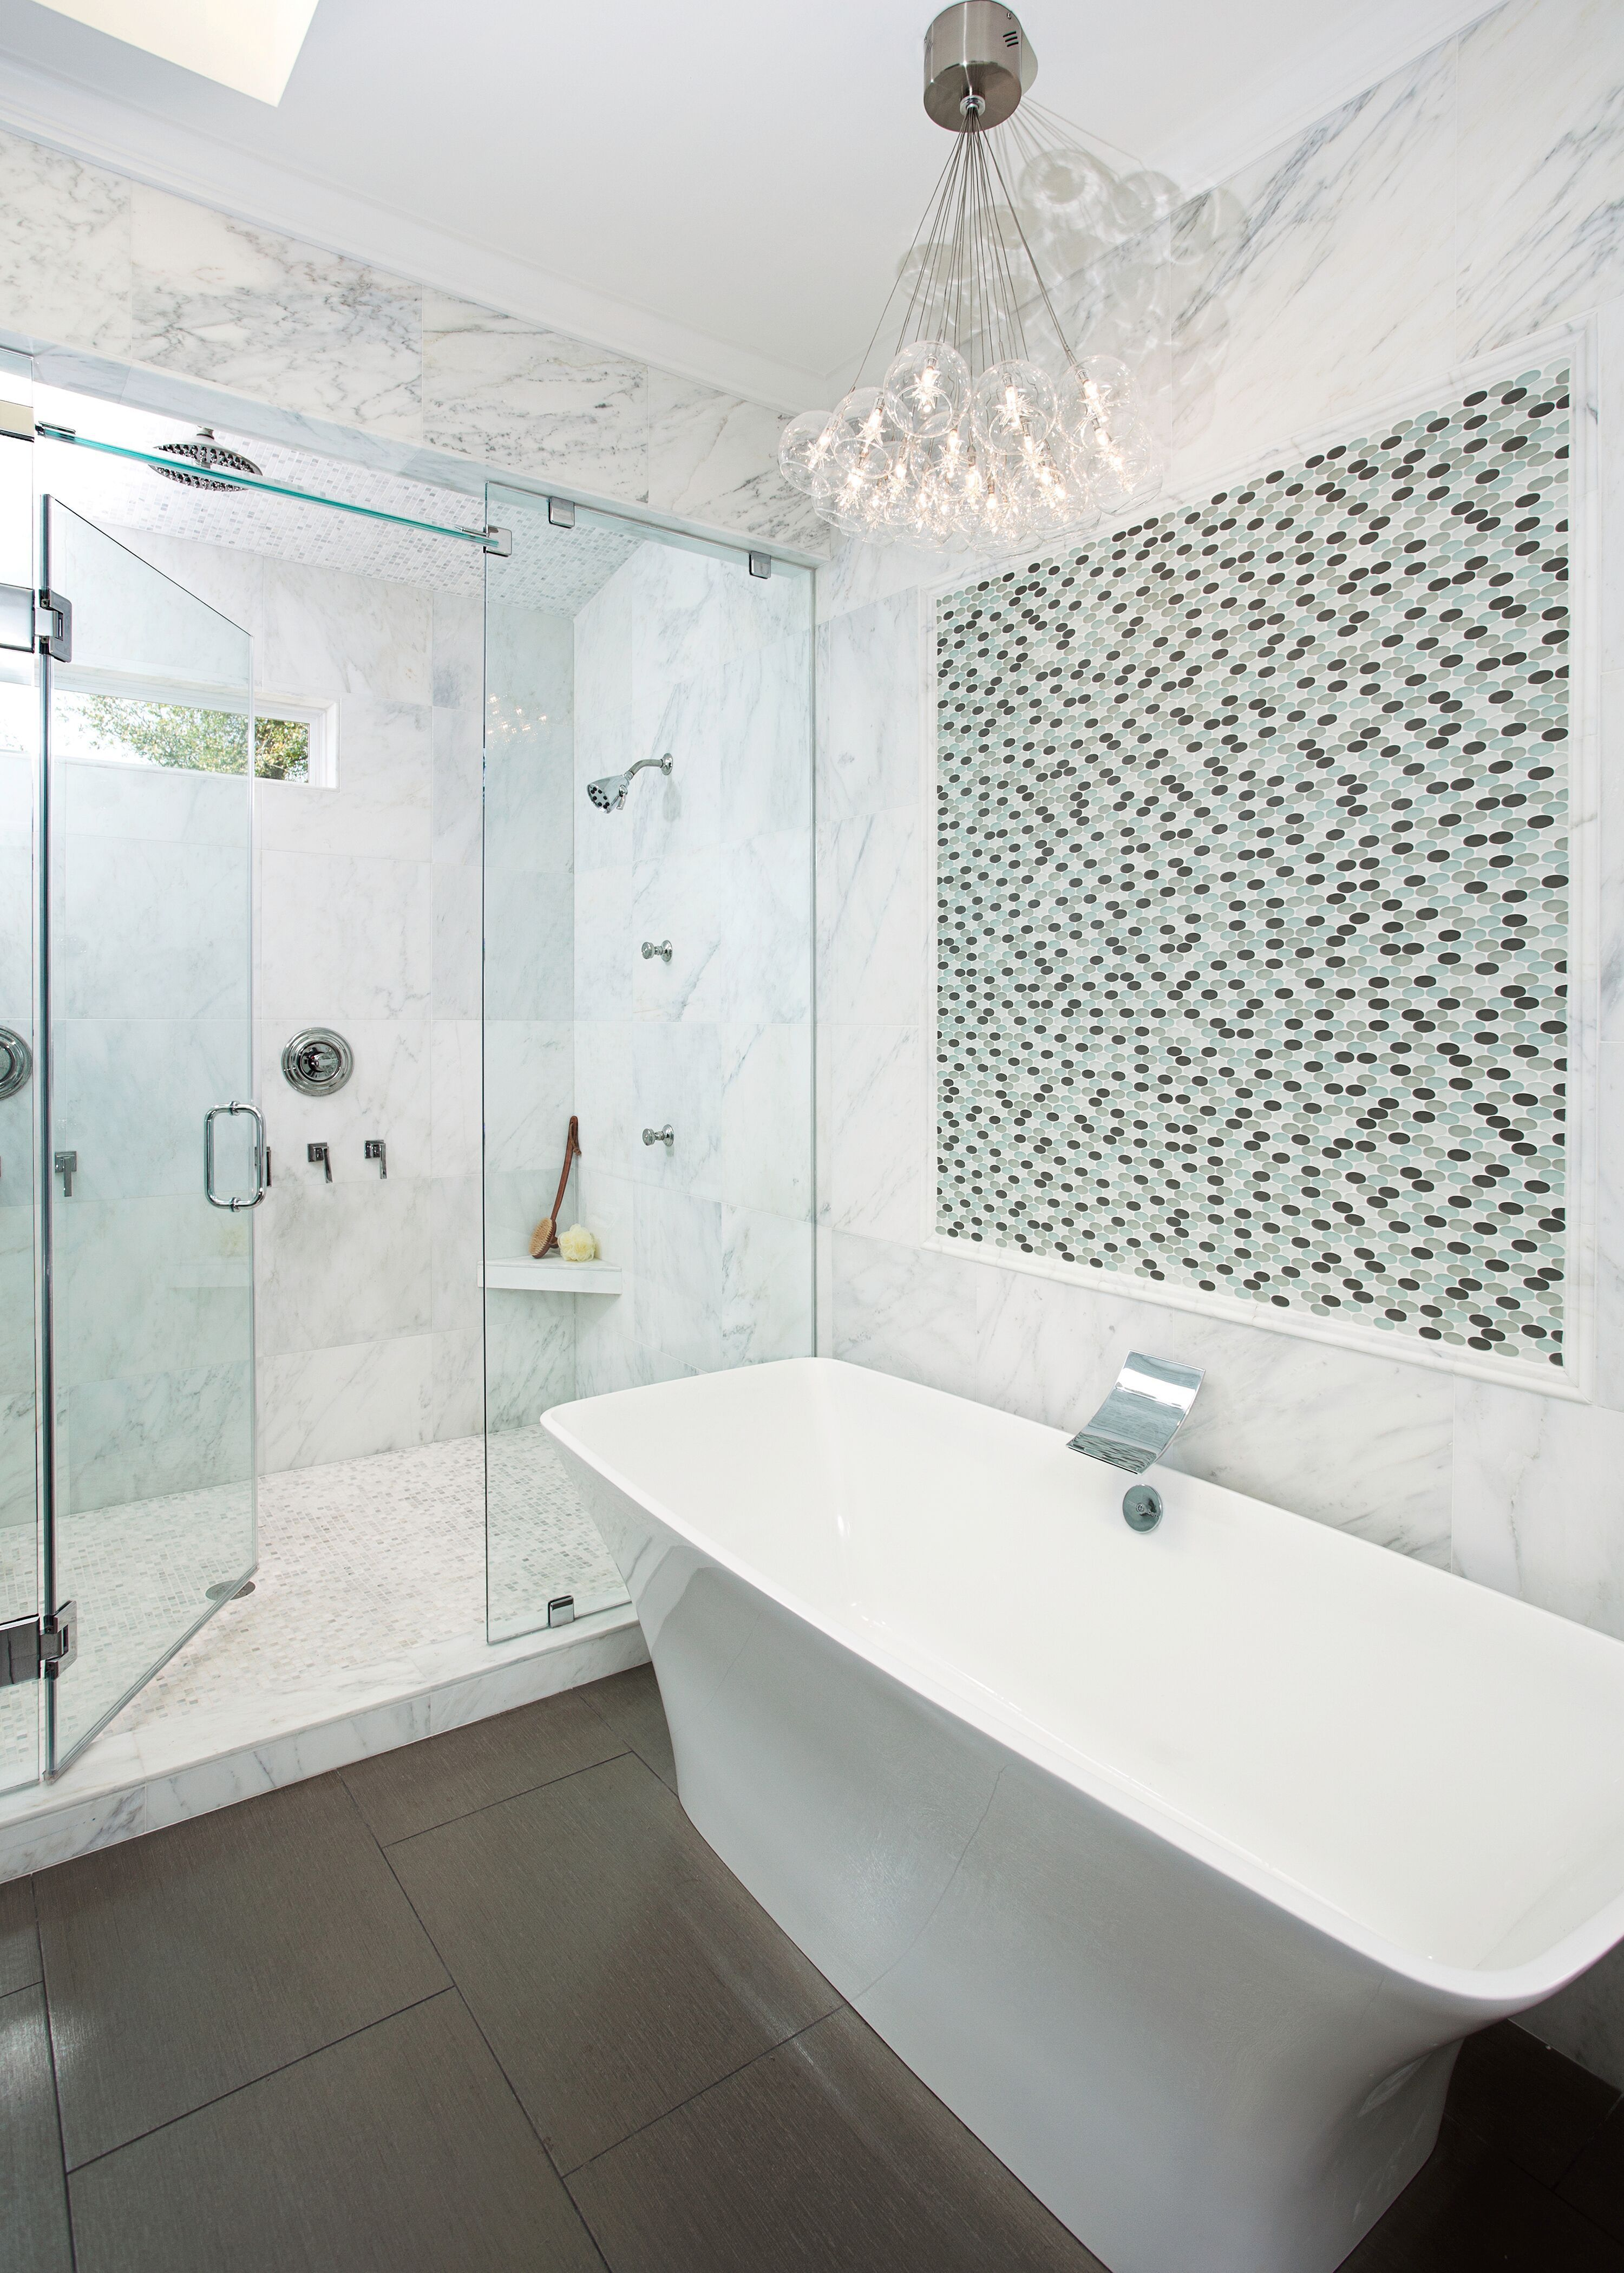 White Marble Bathroom With Dark Floors And A Freestanding Tub With